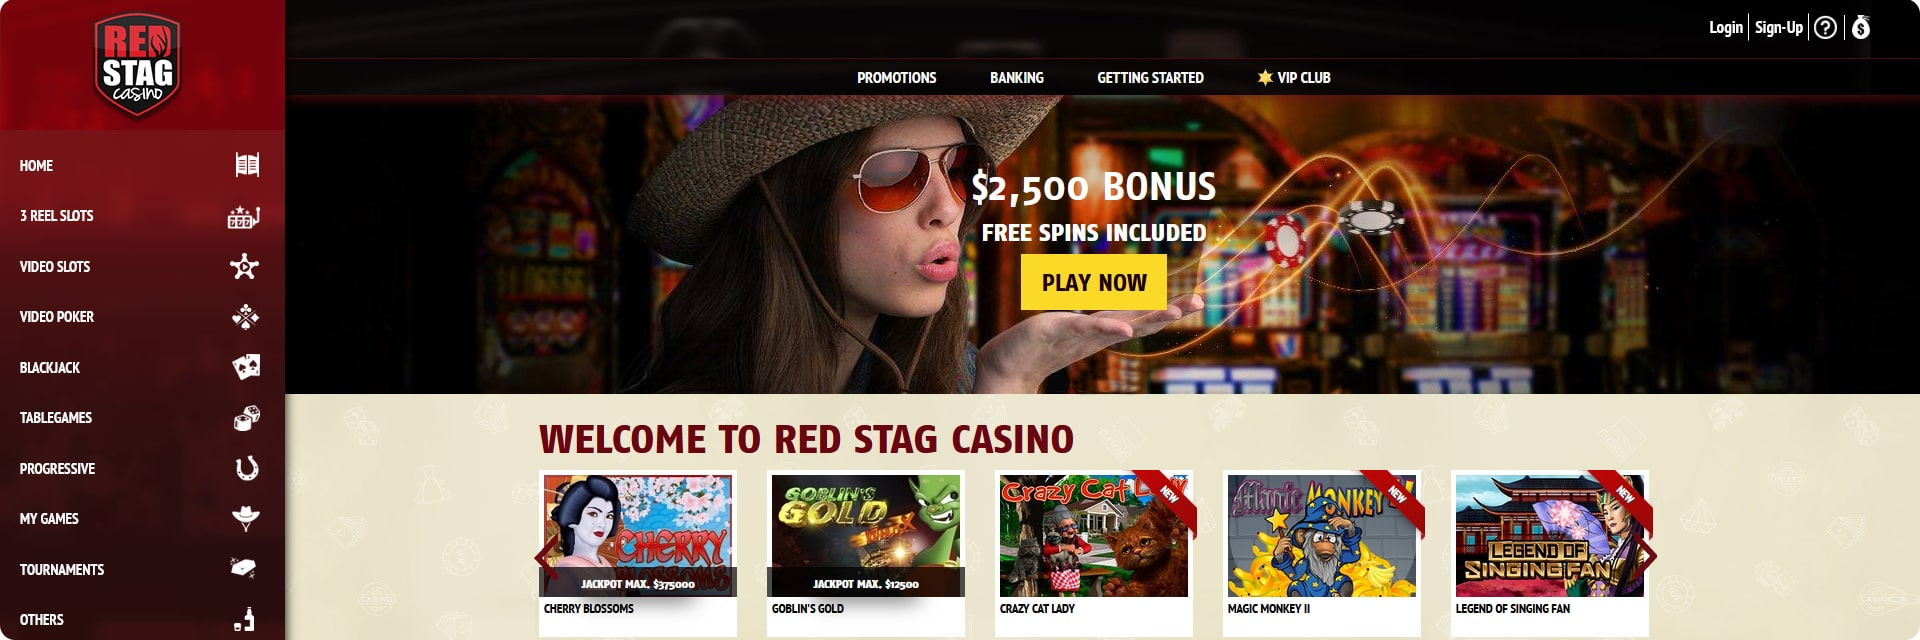 Red Stag Casino Online Review.